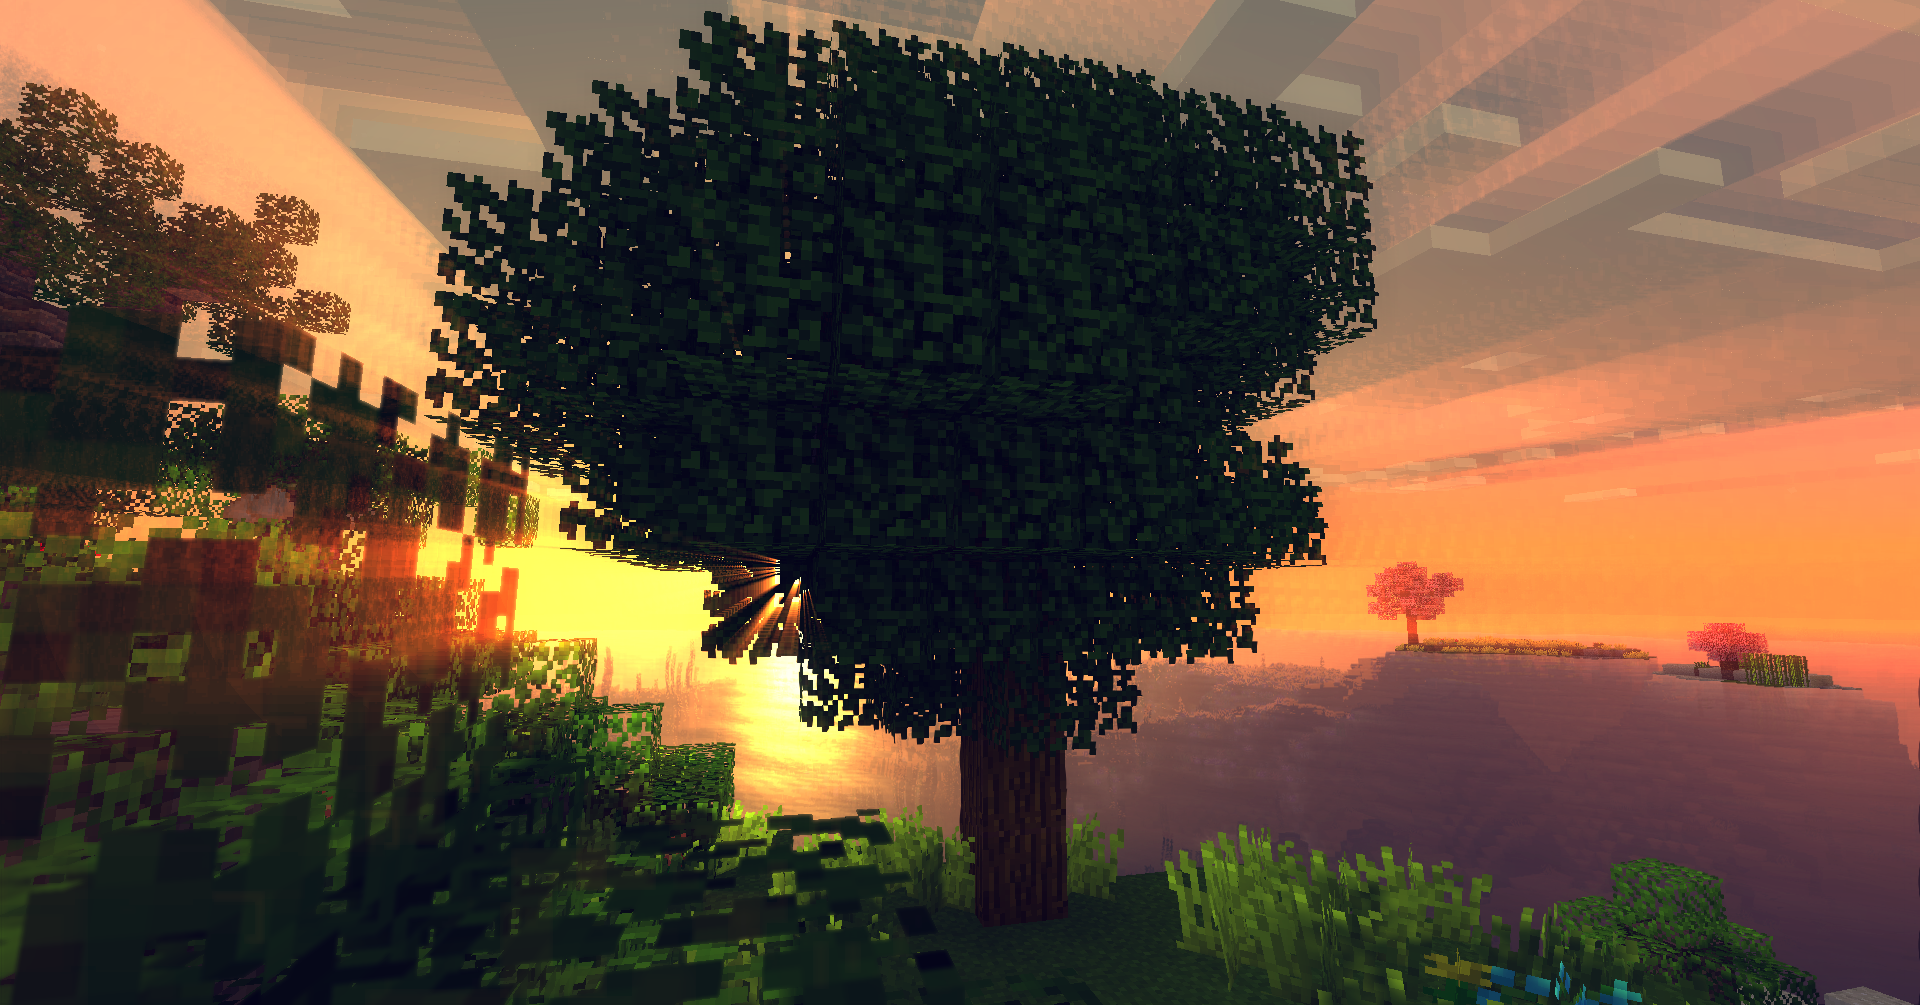 aeaebfffcf61d3cd2eded01a37441e3d [1.7.10] Ancient Trees Mod Download